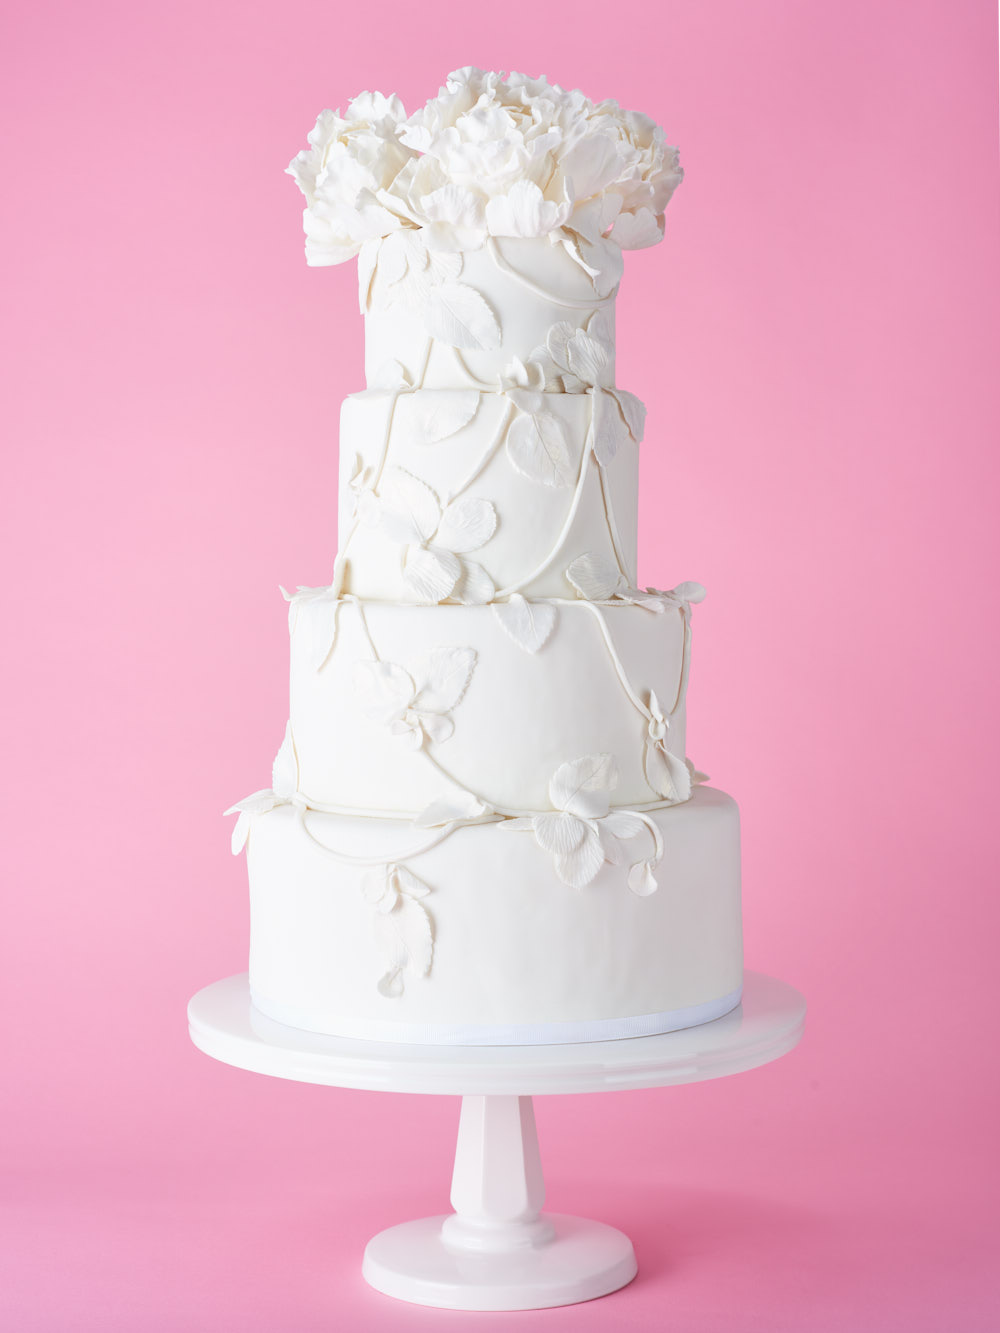 White Cake | Amy Roth Photo.jpg